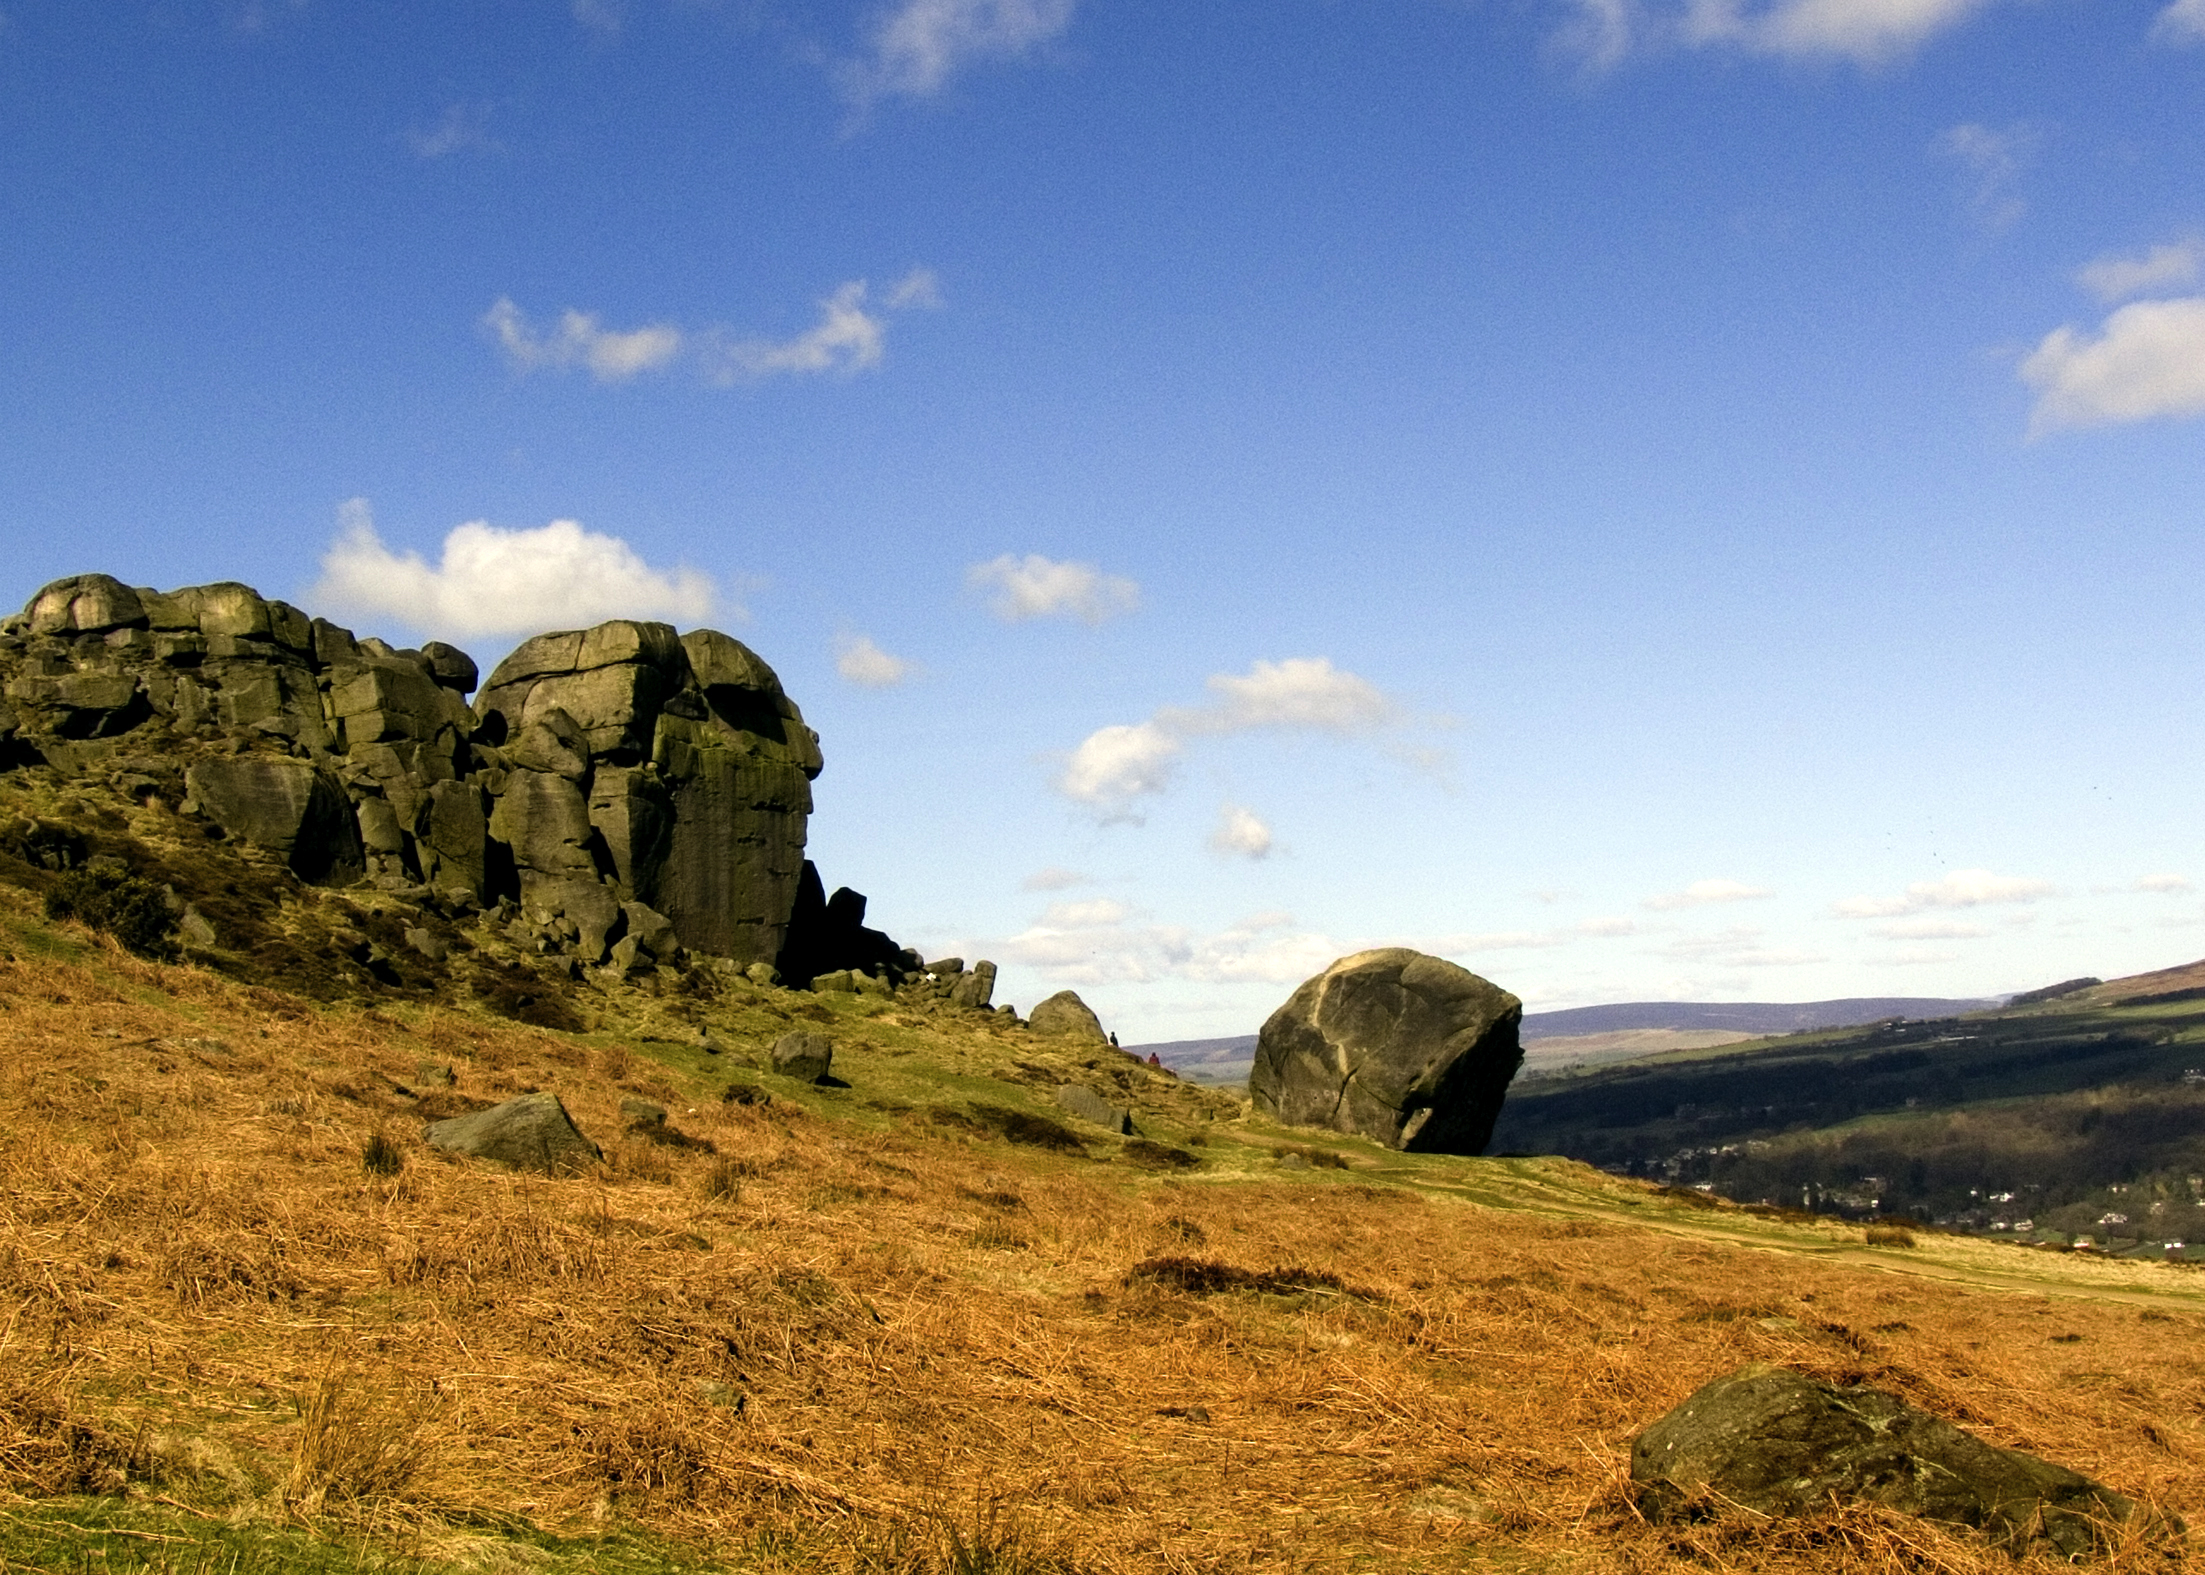 The Cow and Calf rocks at Ilkley. What's your favourite icon of Yorkshire?